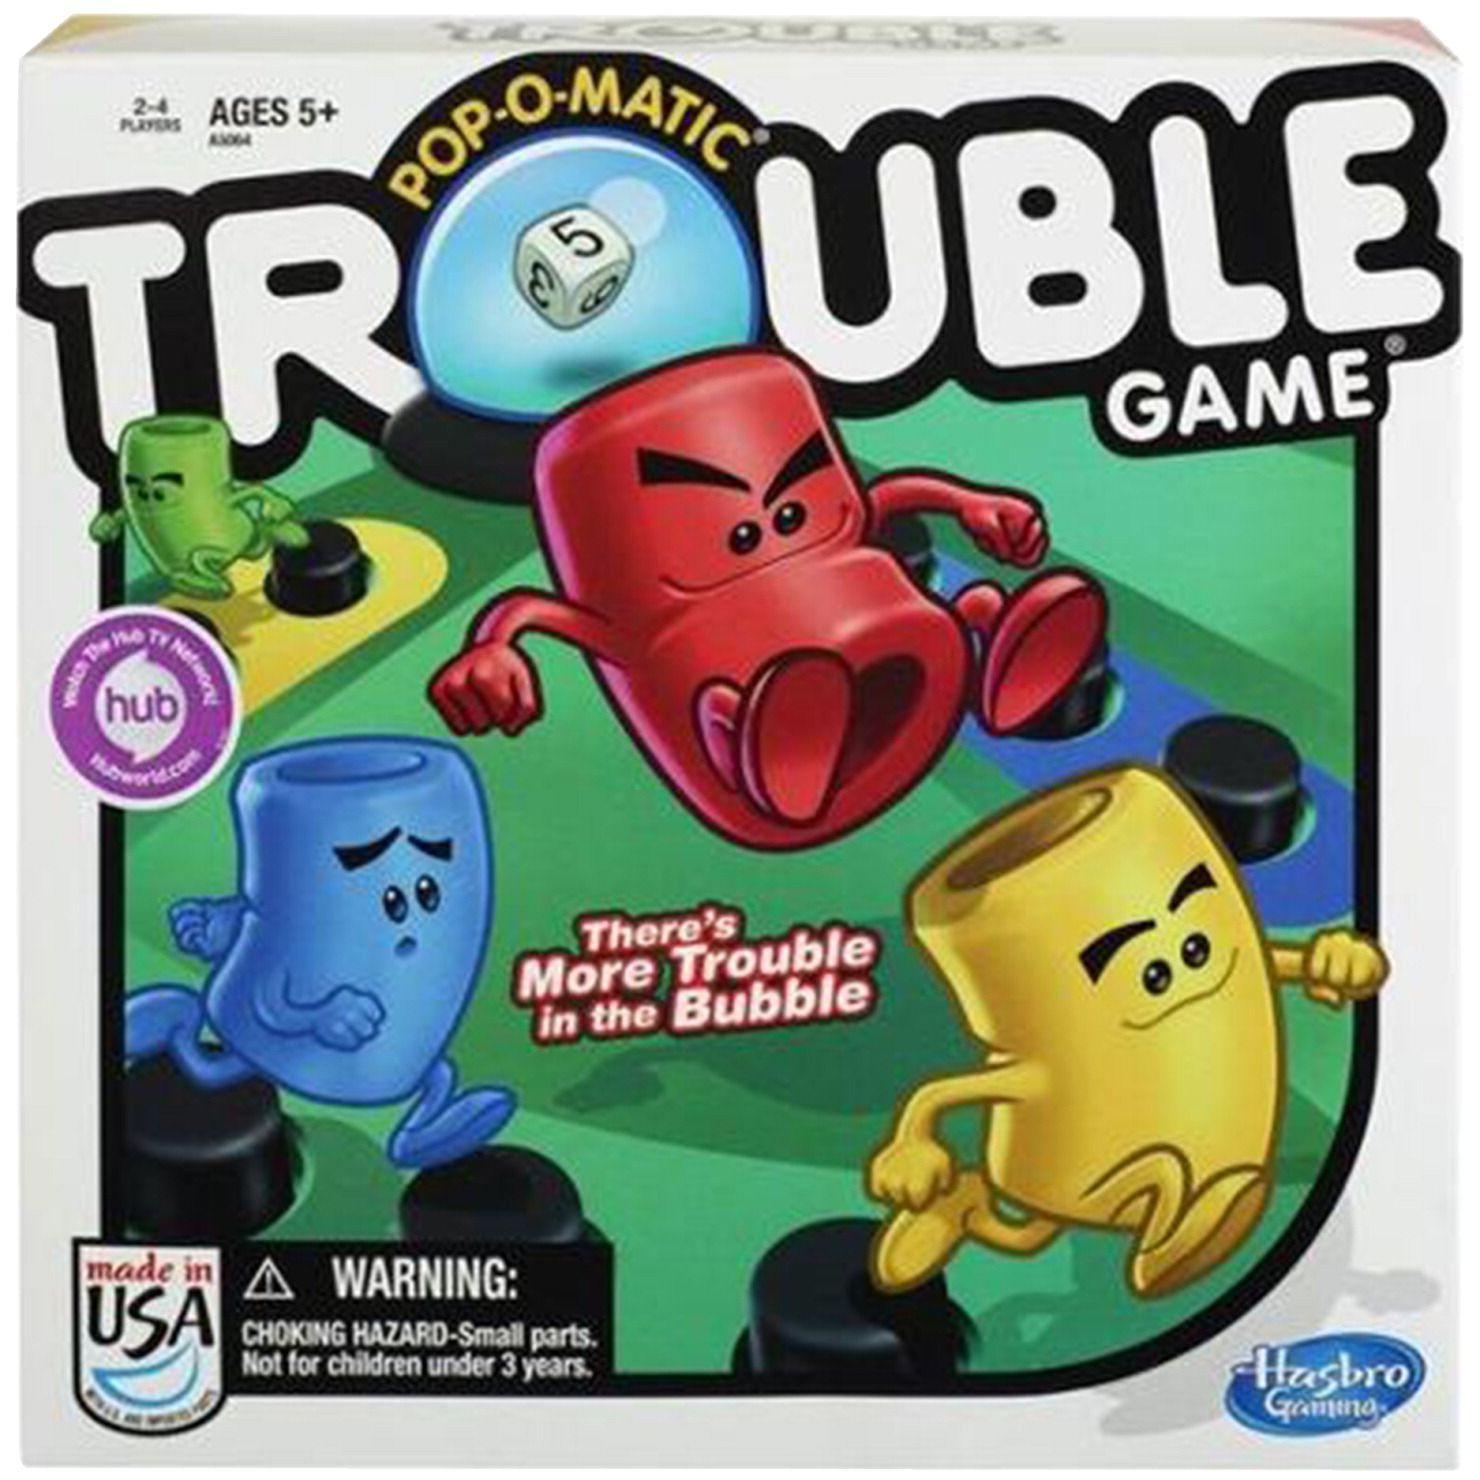 Hasbro Trouble PopOMatic Game Board games for kids